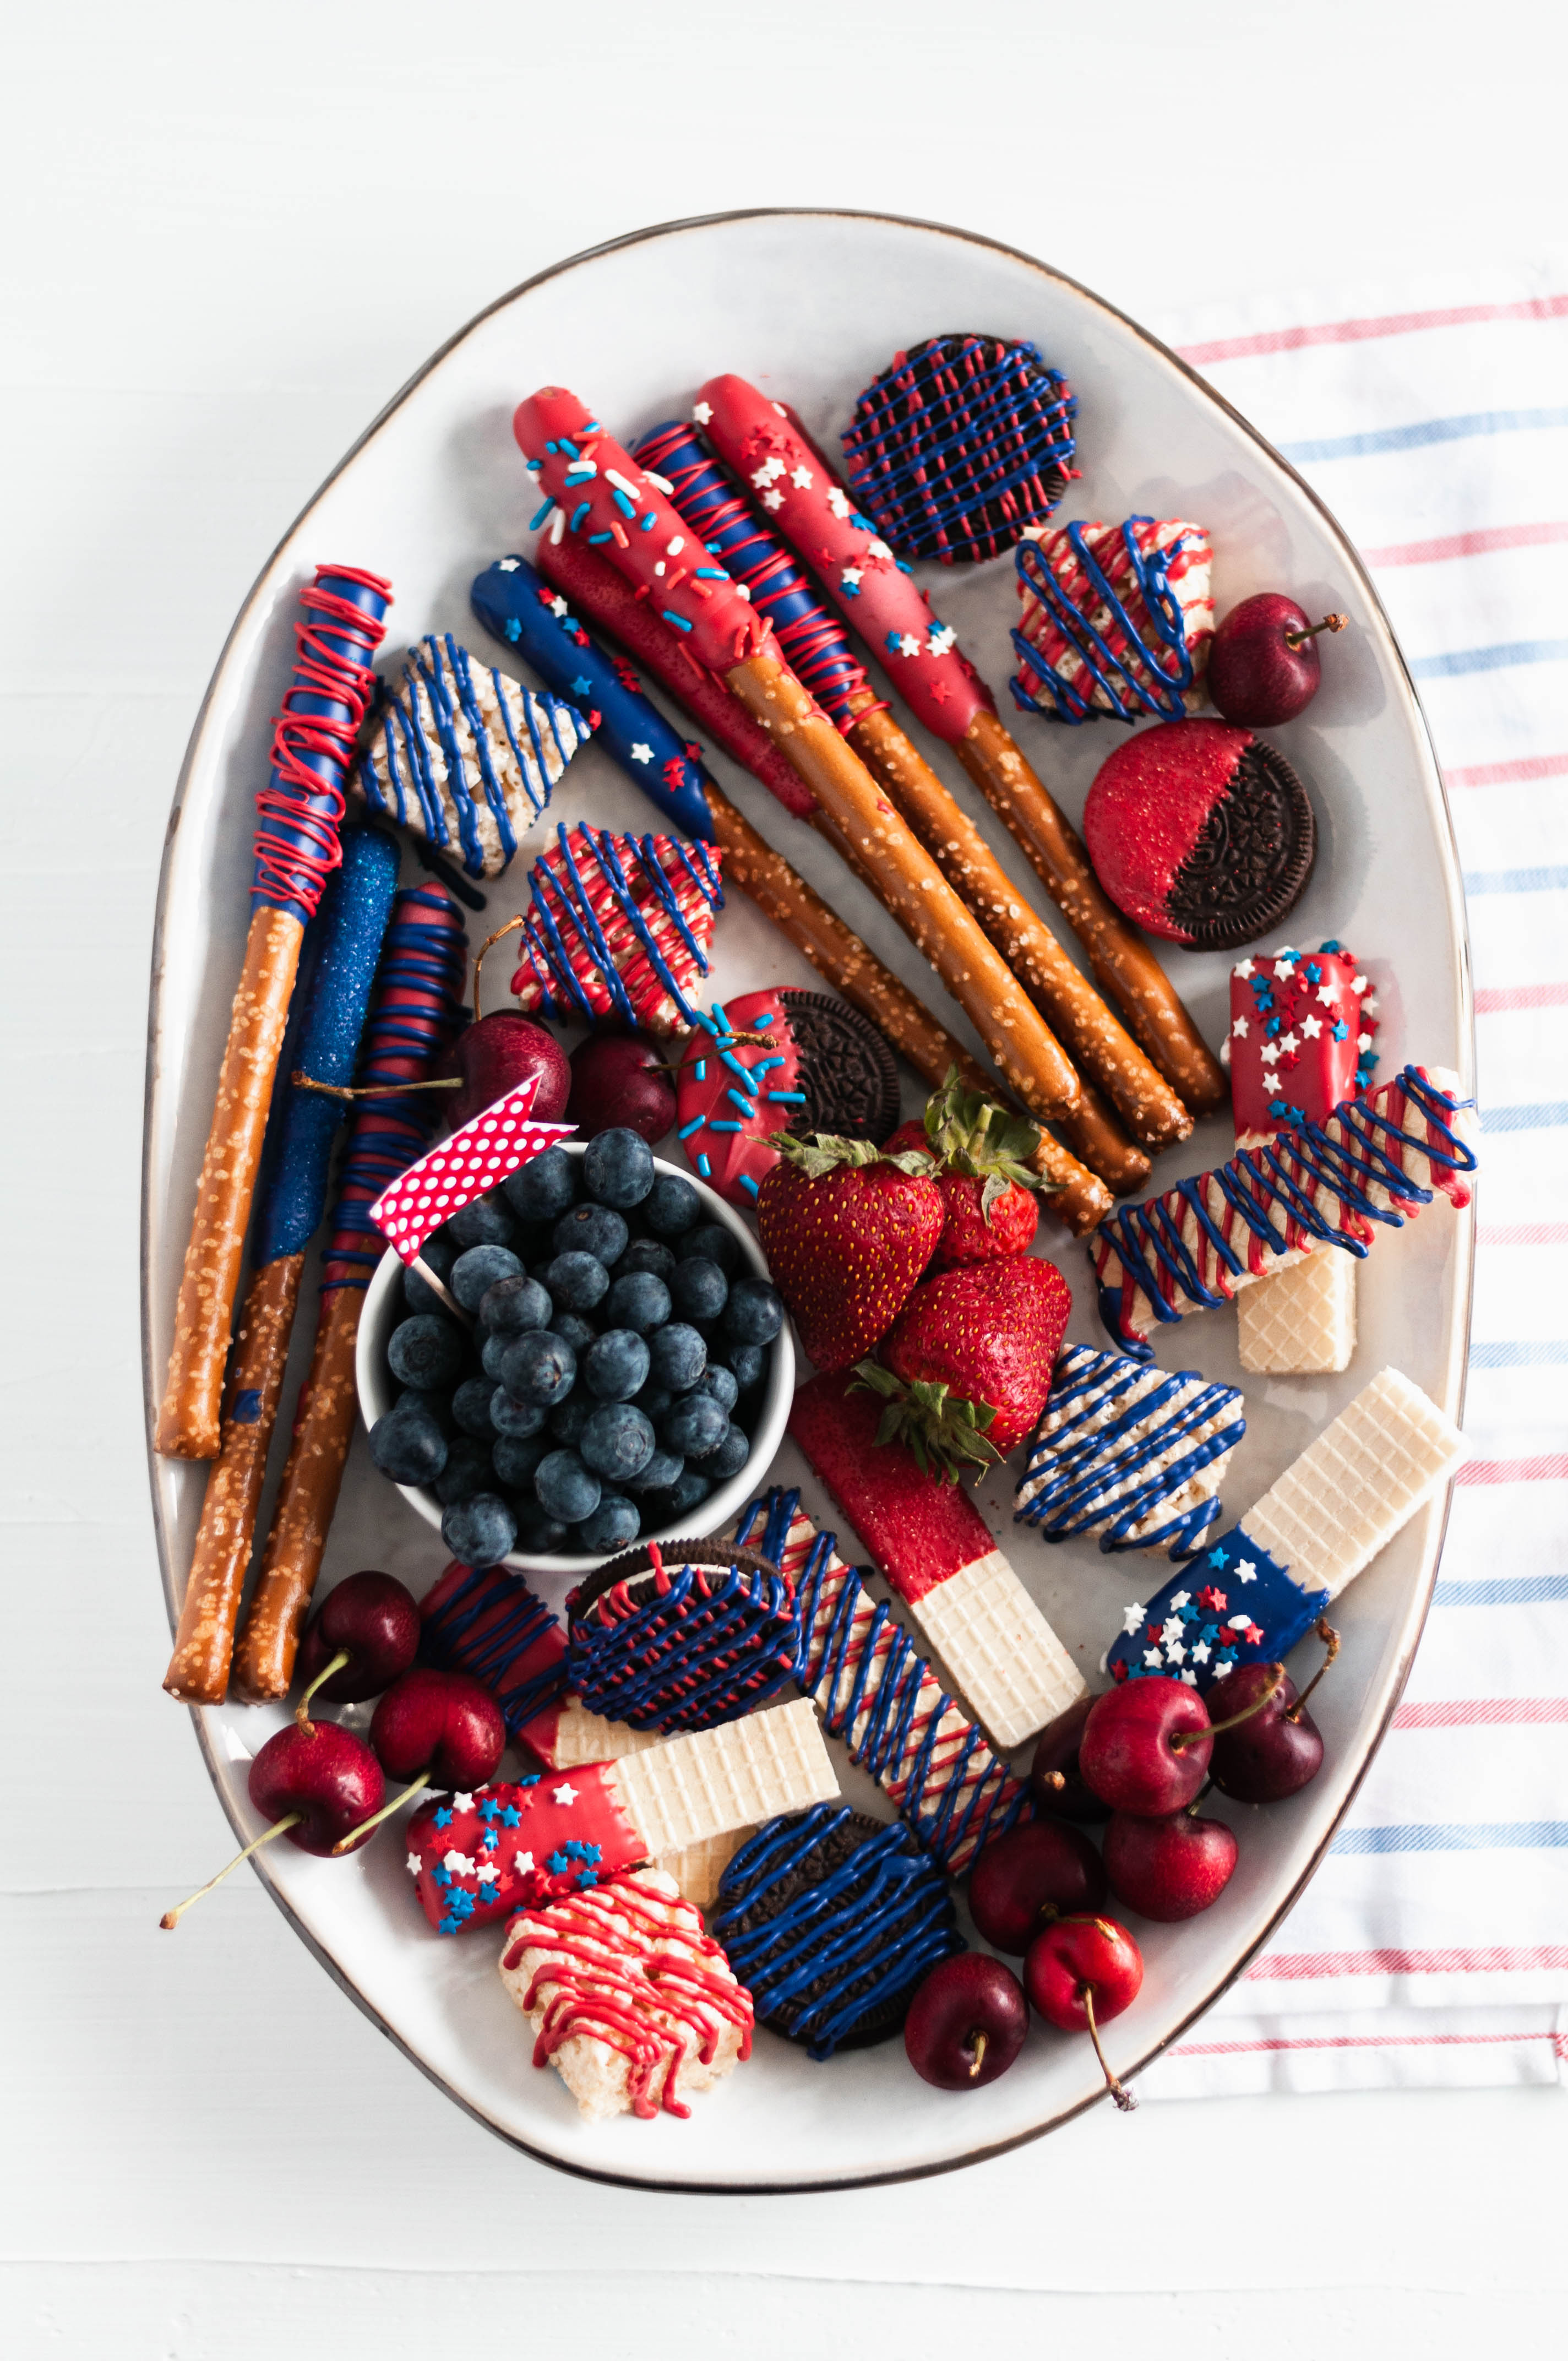 You'll be the hit of the 4th of July party when you show up with this Red White and Blue Dessert Board. Super simple to make with store-bought ingredients, some time and all your creative juices.